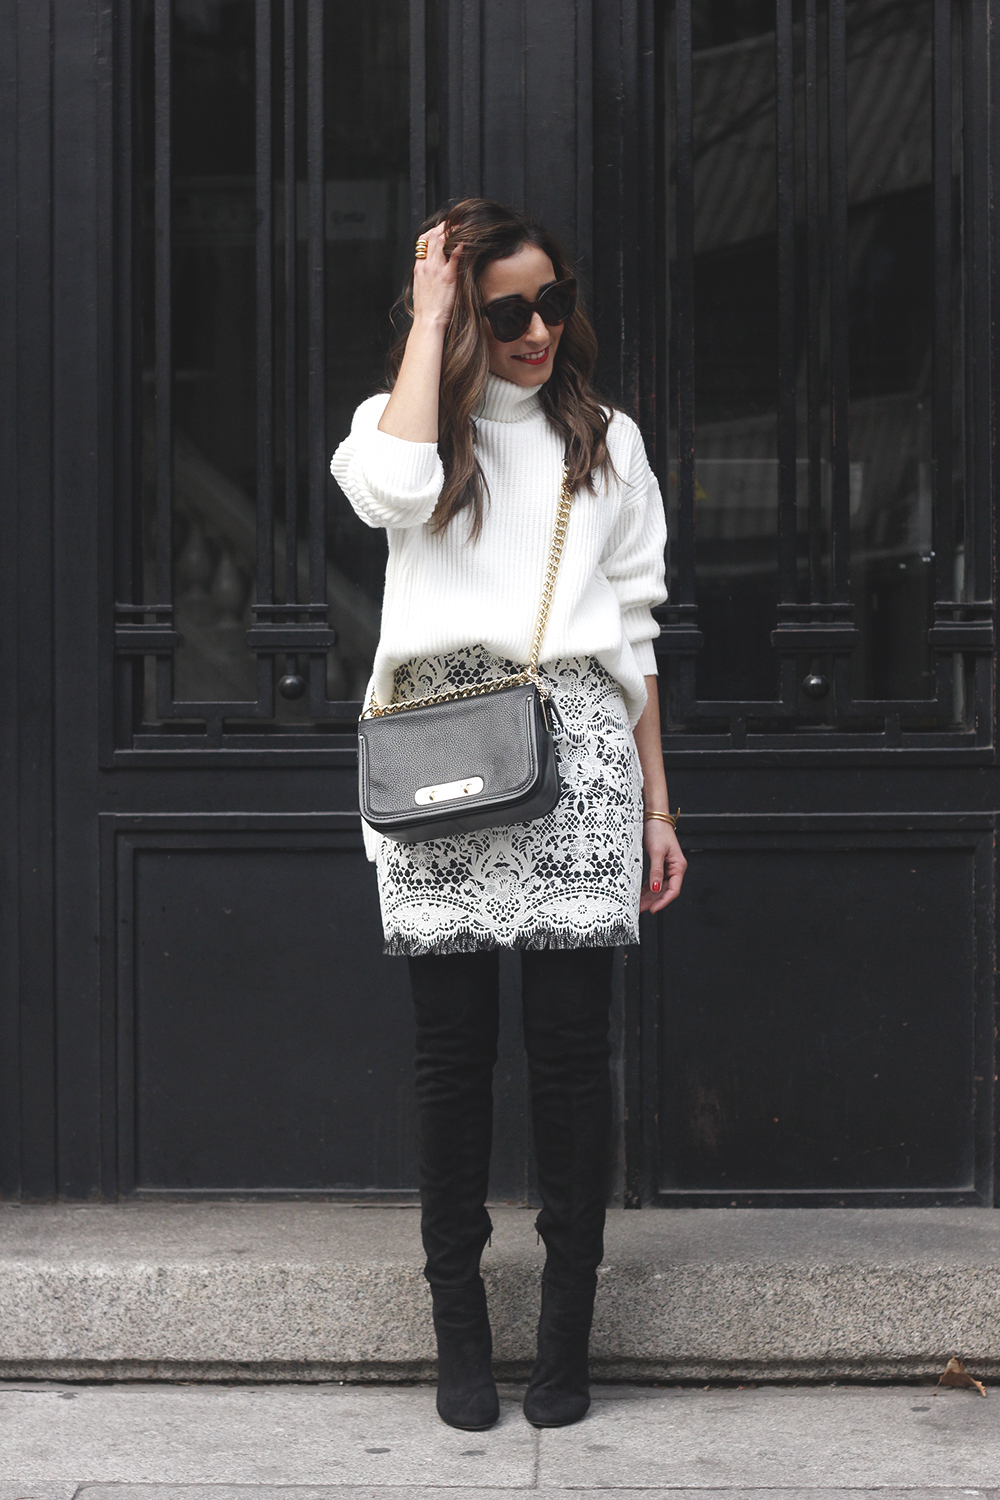 black and white lace skirt over the knee boots white turtleneck jersey outfit style winter03